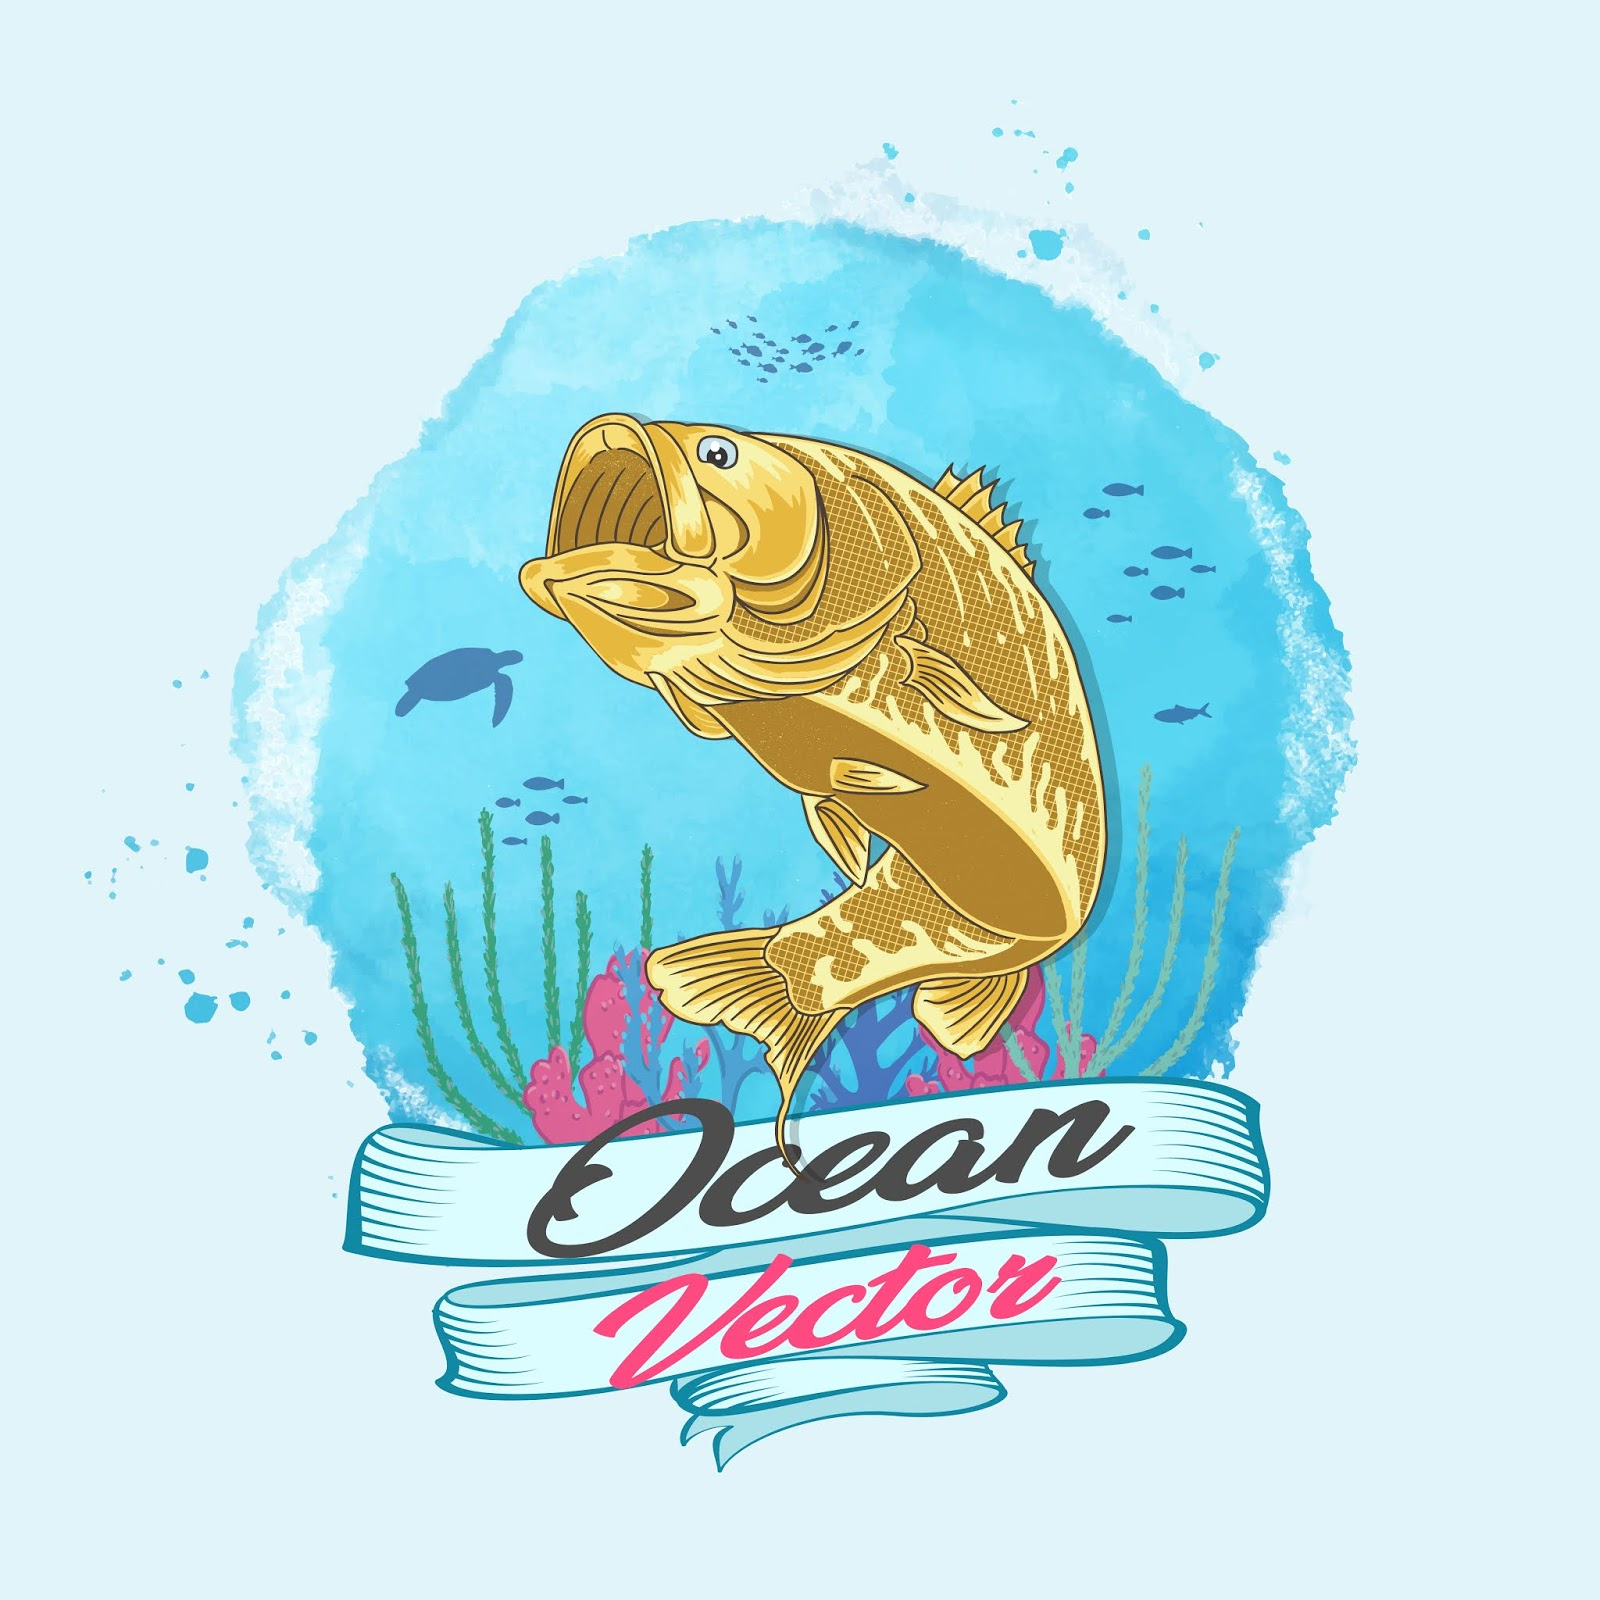 Ocean Vector Gold Fish Deep Water Vector	 Free Download Vector CDR, AI, EPS and PNG Formats